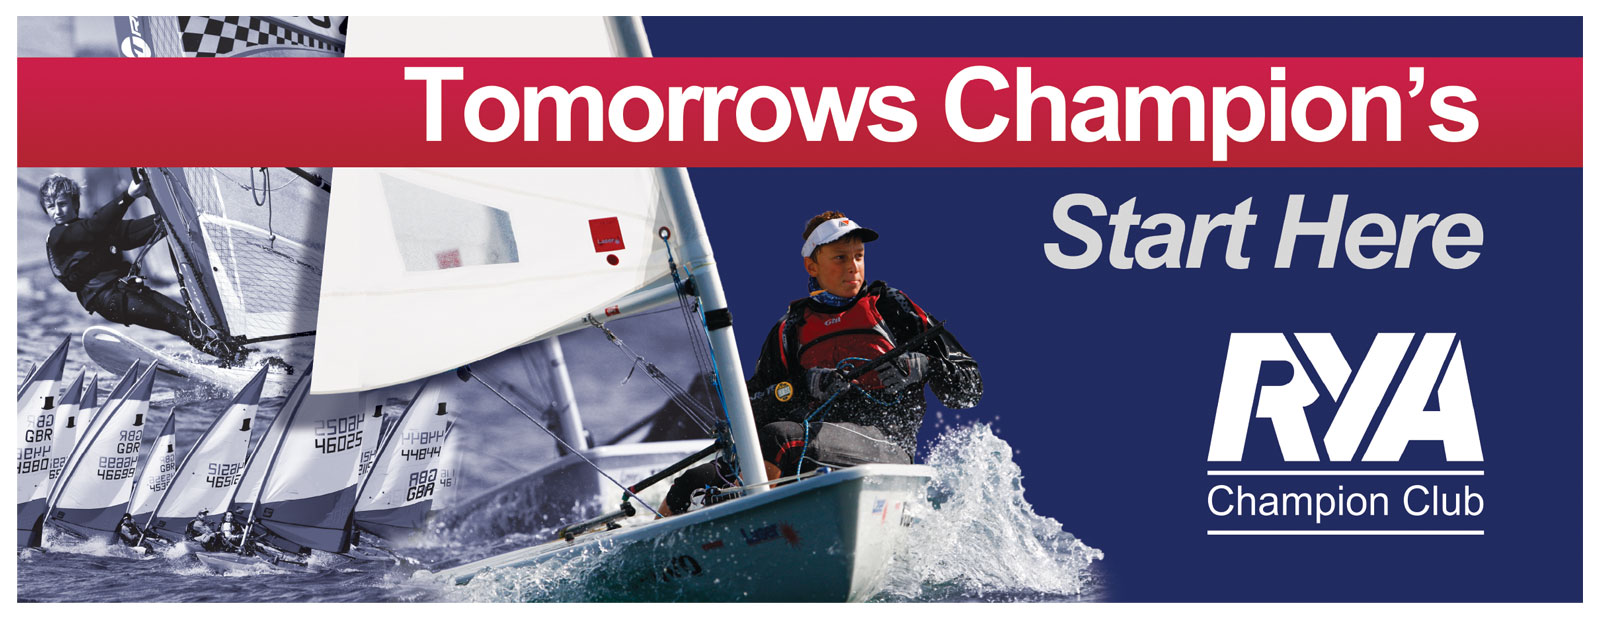 RYA sailing banner design